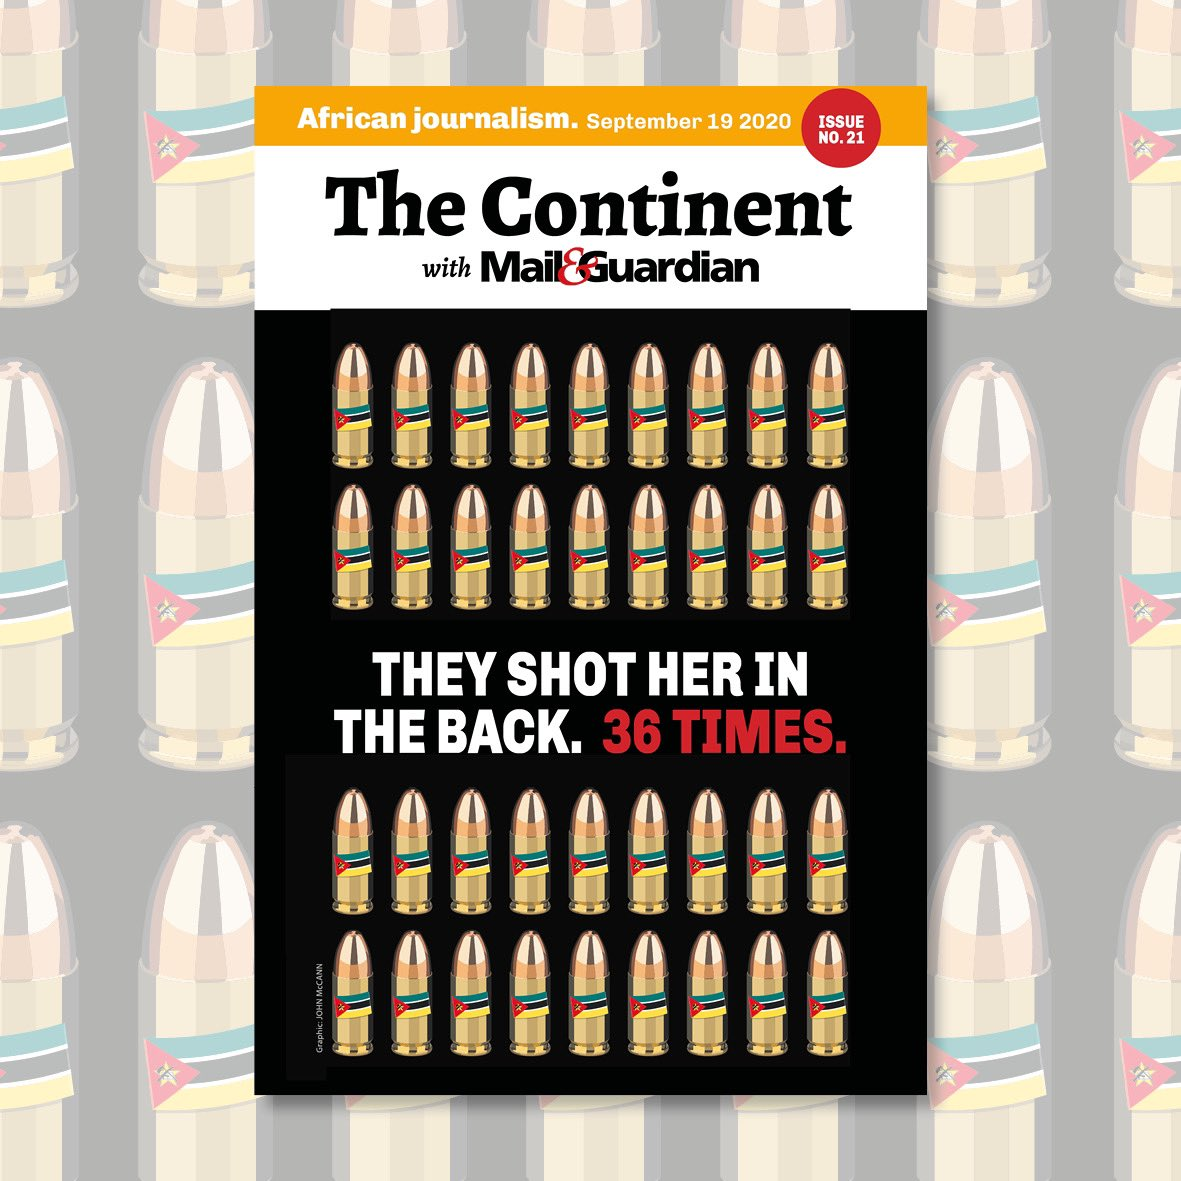 In Issue 21 of @thecontinent_, @luisnhachote reports on a brutal killing in Mozambique. Download this week's edition here: https://t.co/tJG3JjVXsF https://t.co/WgmQfBihuG